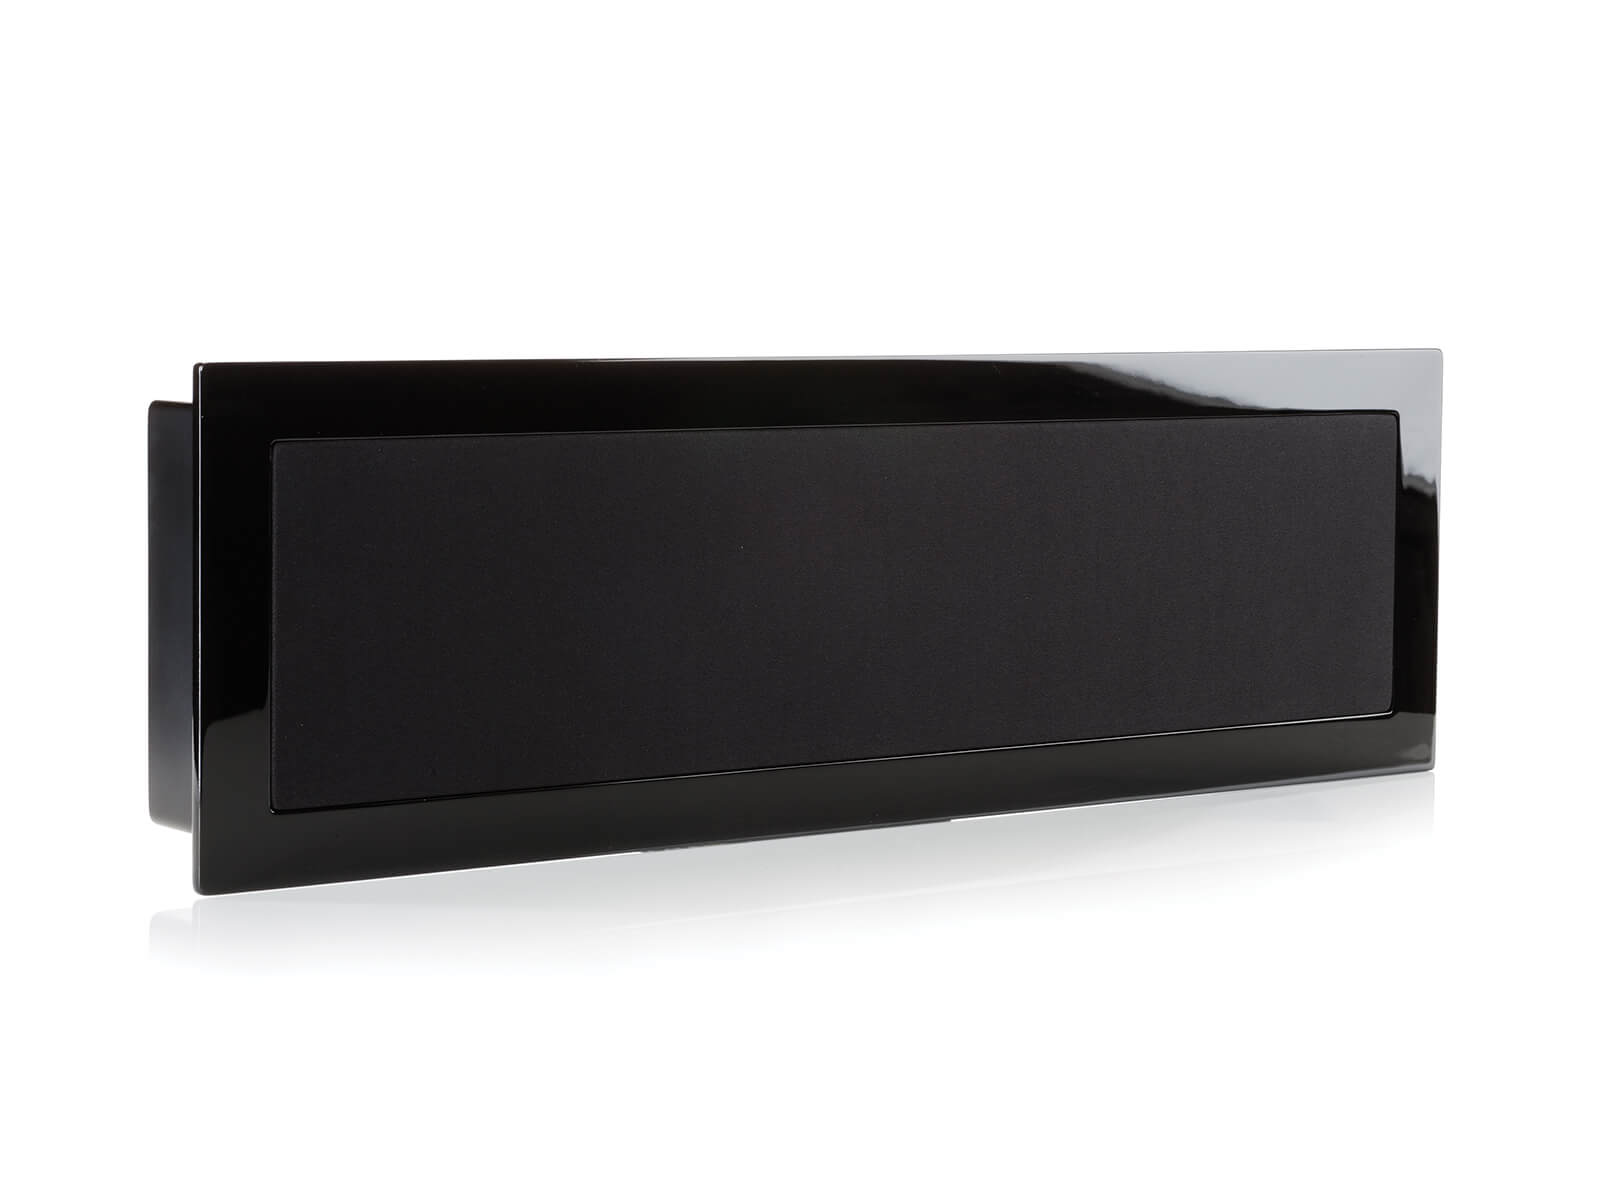 SoundFrame SF1, on-wall speakers, horizontal with a high gloss black lacquer finish.